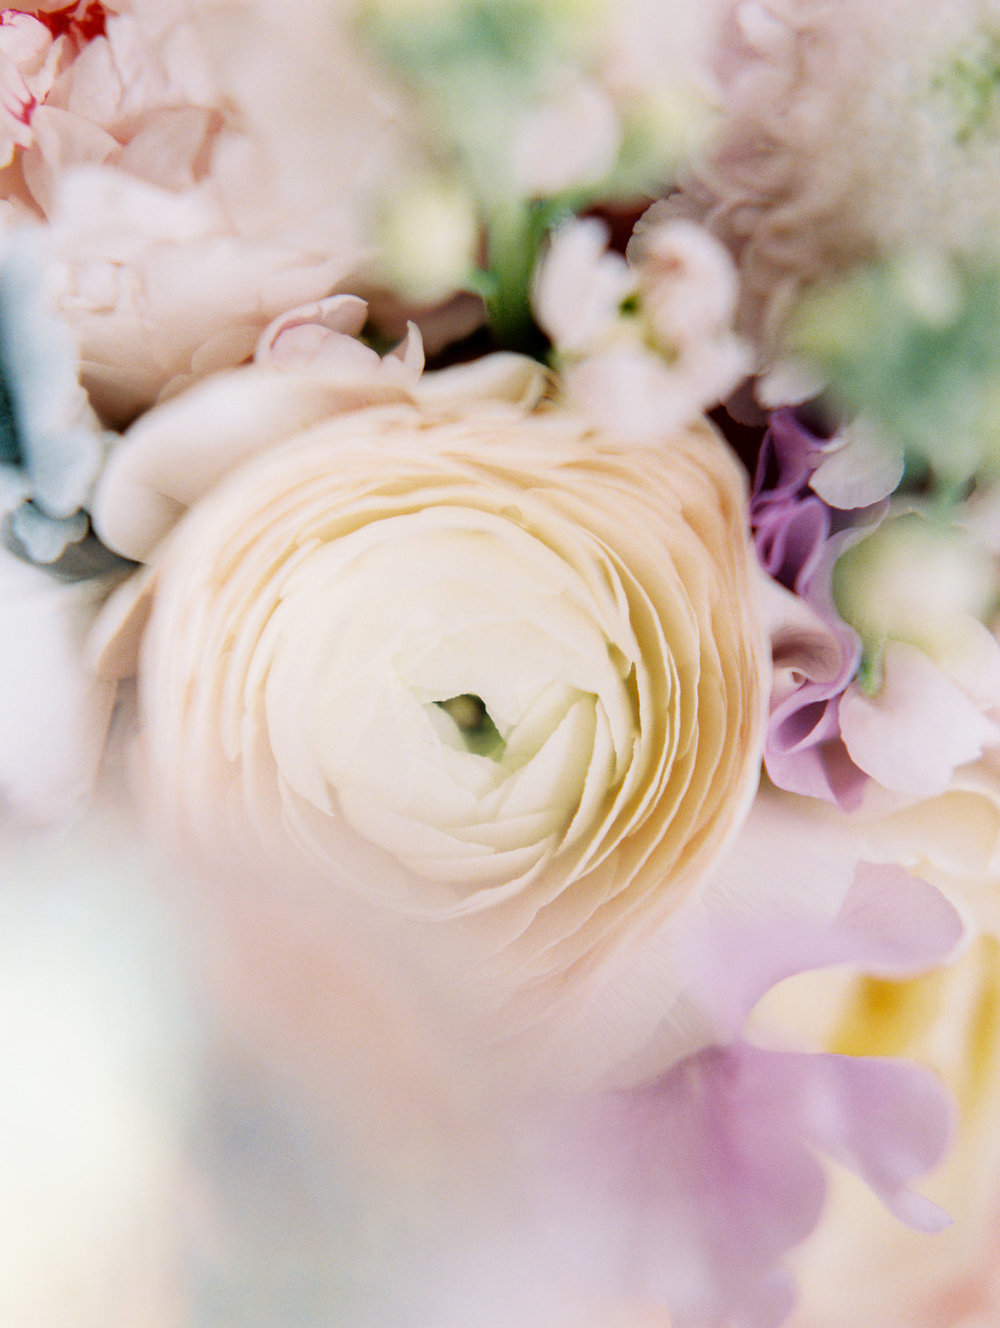 dreamy-colorful-flower-bridal-bouquet.jpg